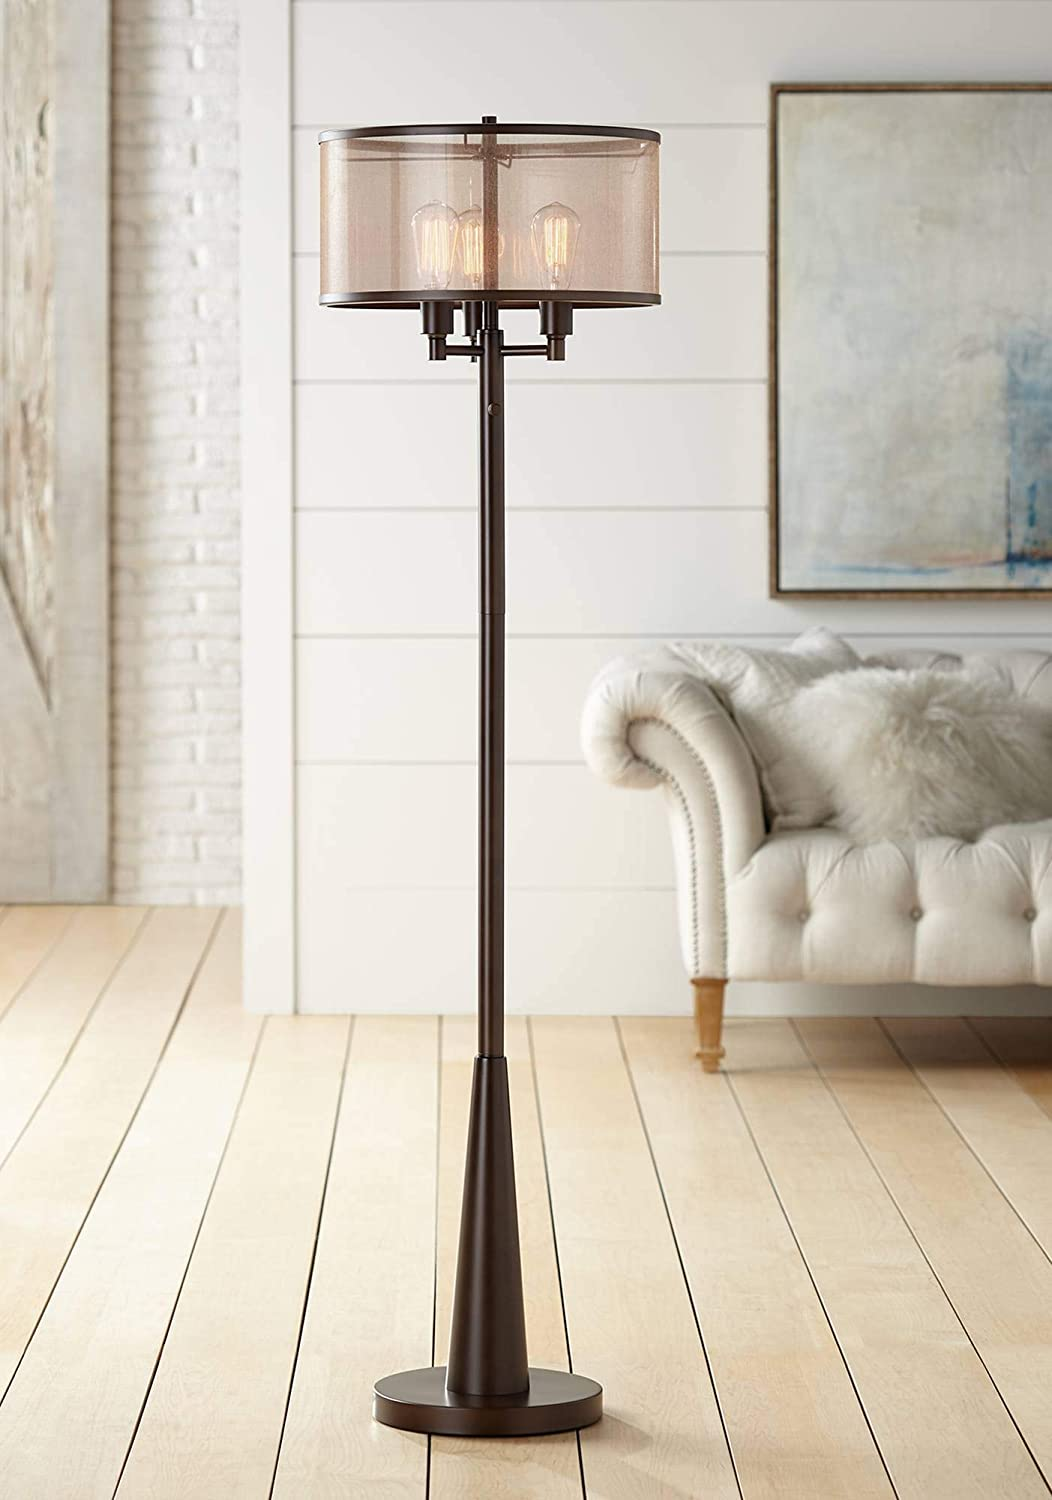 Durango Rustic Farmhouse Vintage Standing Floor Lamp 3 Light Oiled Bronze Brown Sheer Shade Antique Led Edison Bulbs For Living Room Reading House Bedroom Home Office Uplight Franklin Iron Works Amazon Com